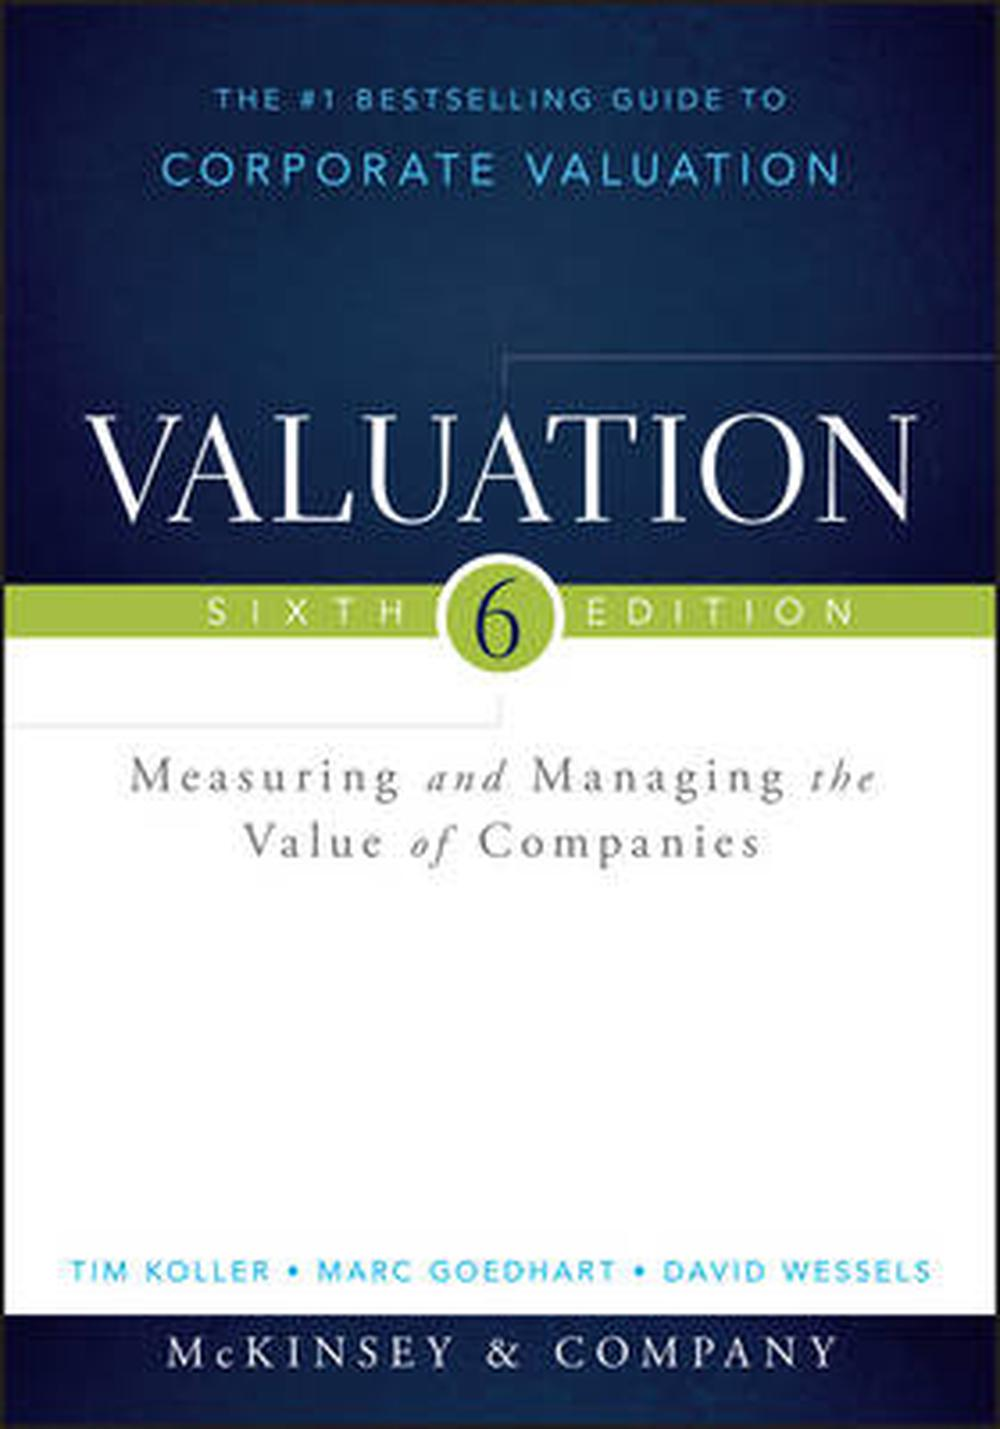 valuation mckinsey 6th edition pdf download